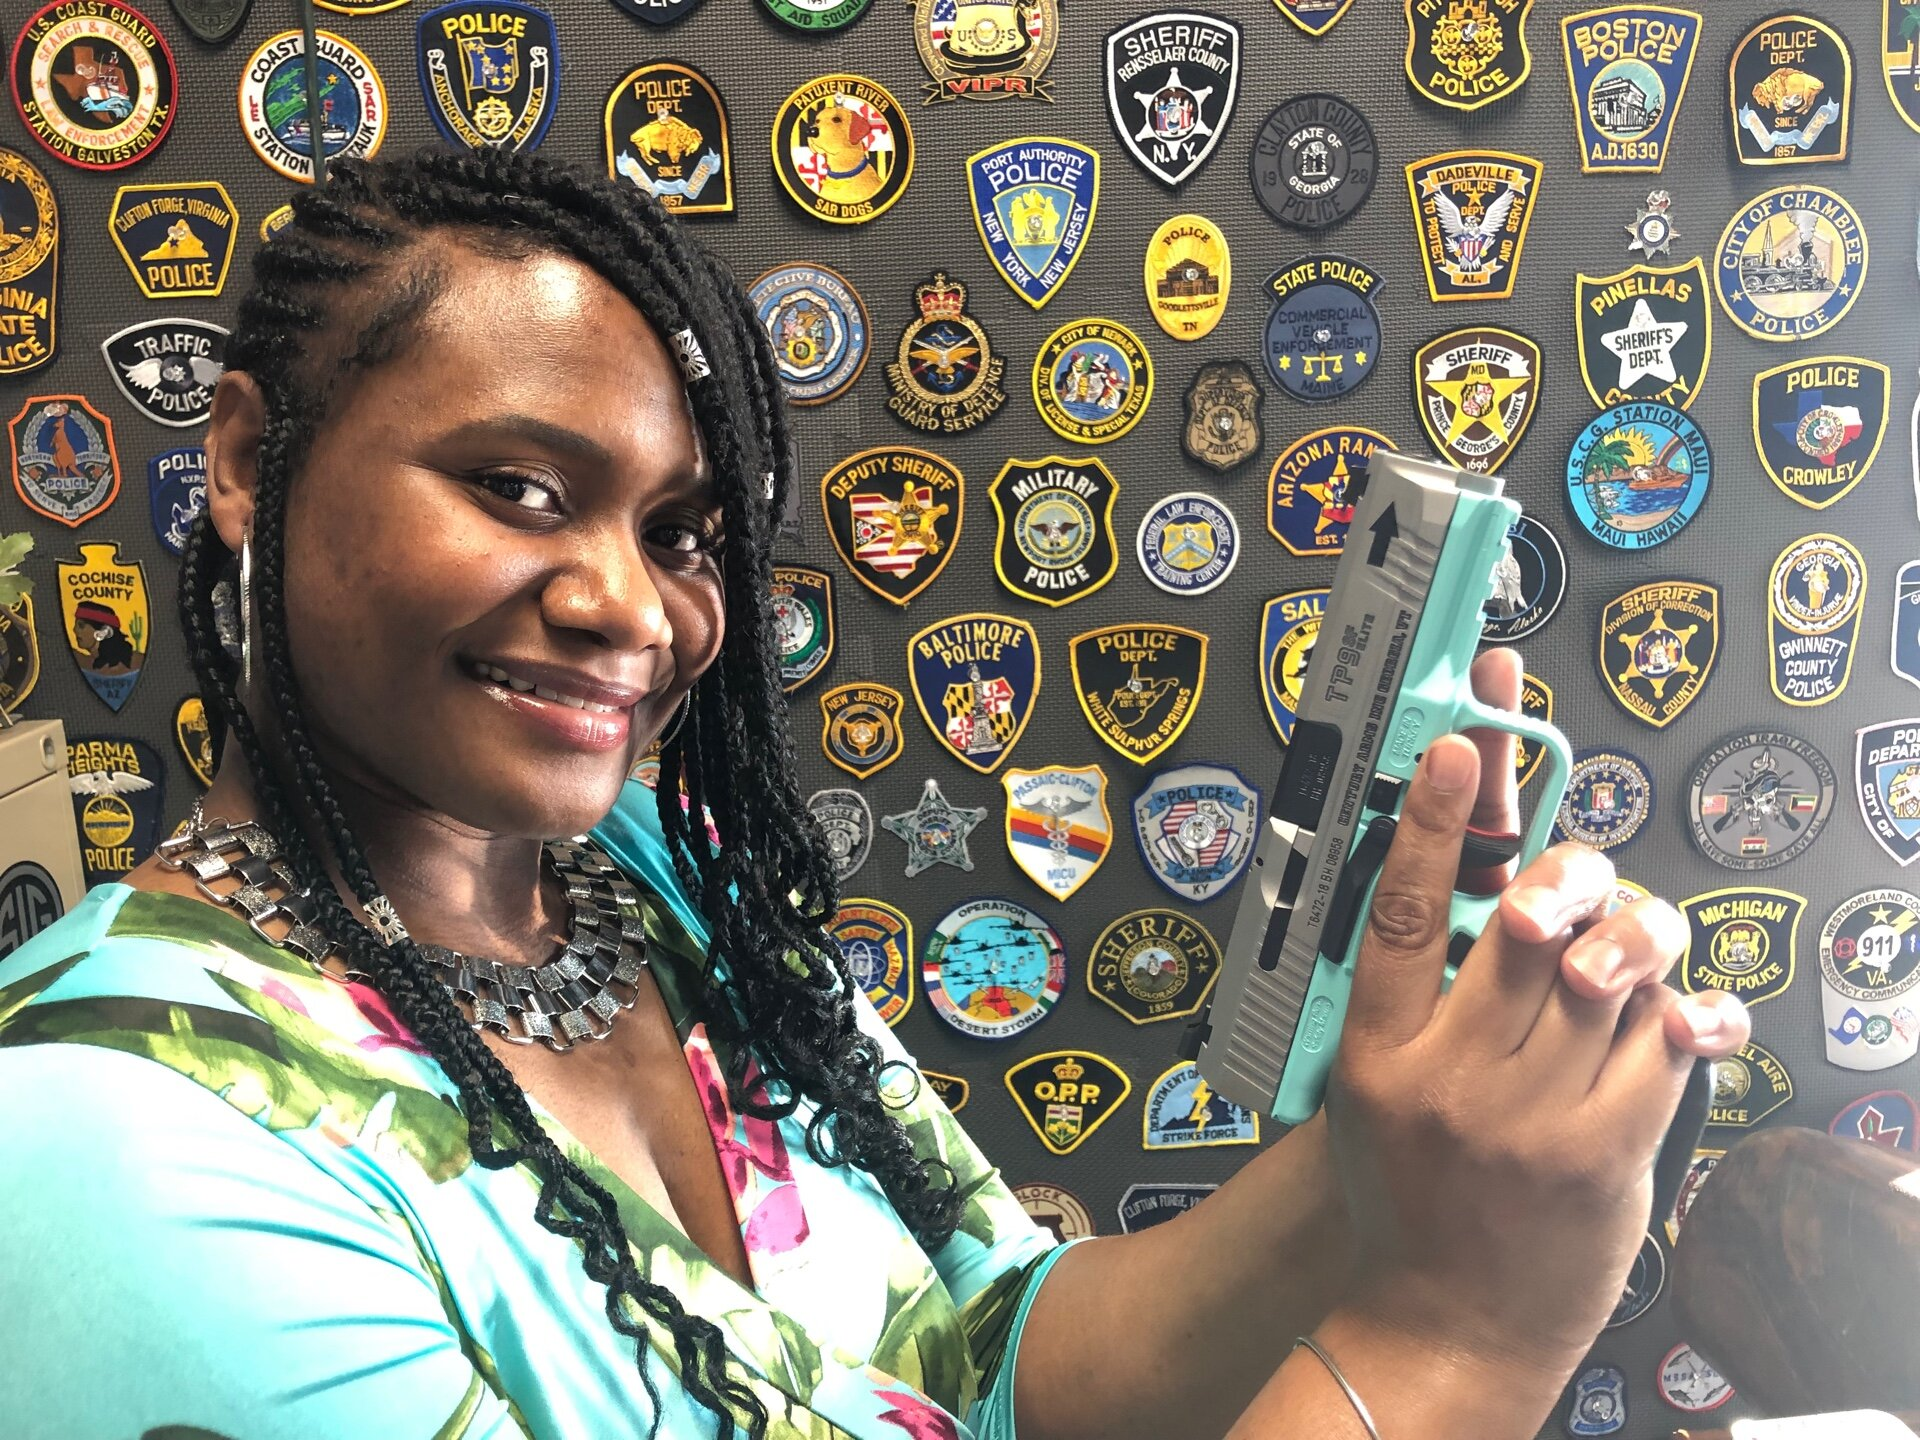 Another very satisfied customer with a color-coordinated pistol that she shot very well.